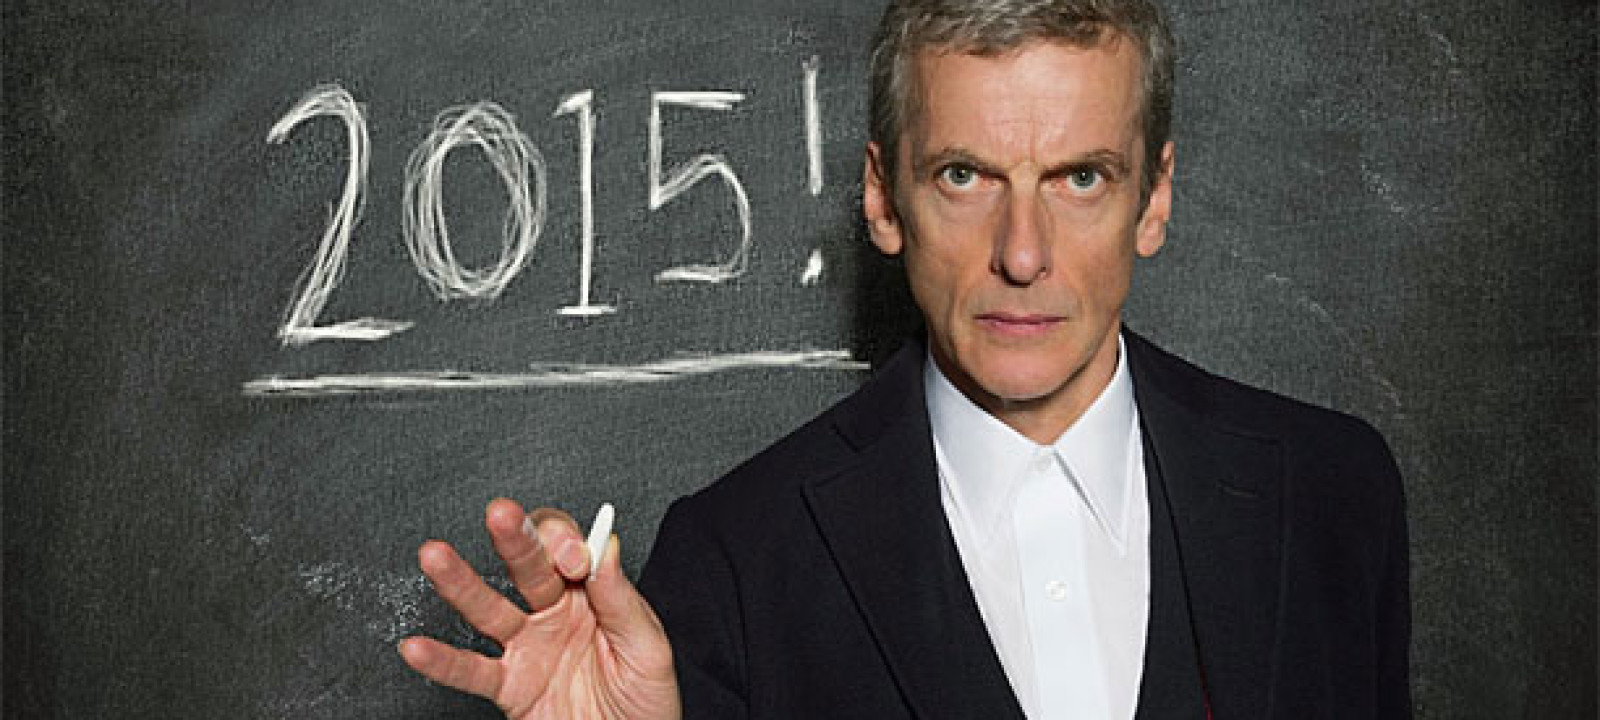 A fixed point in time. Happy new year! (Pic: BBC)